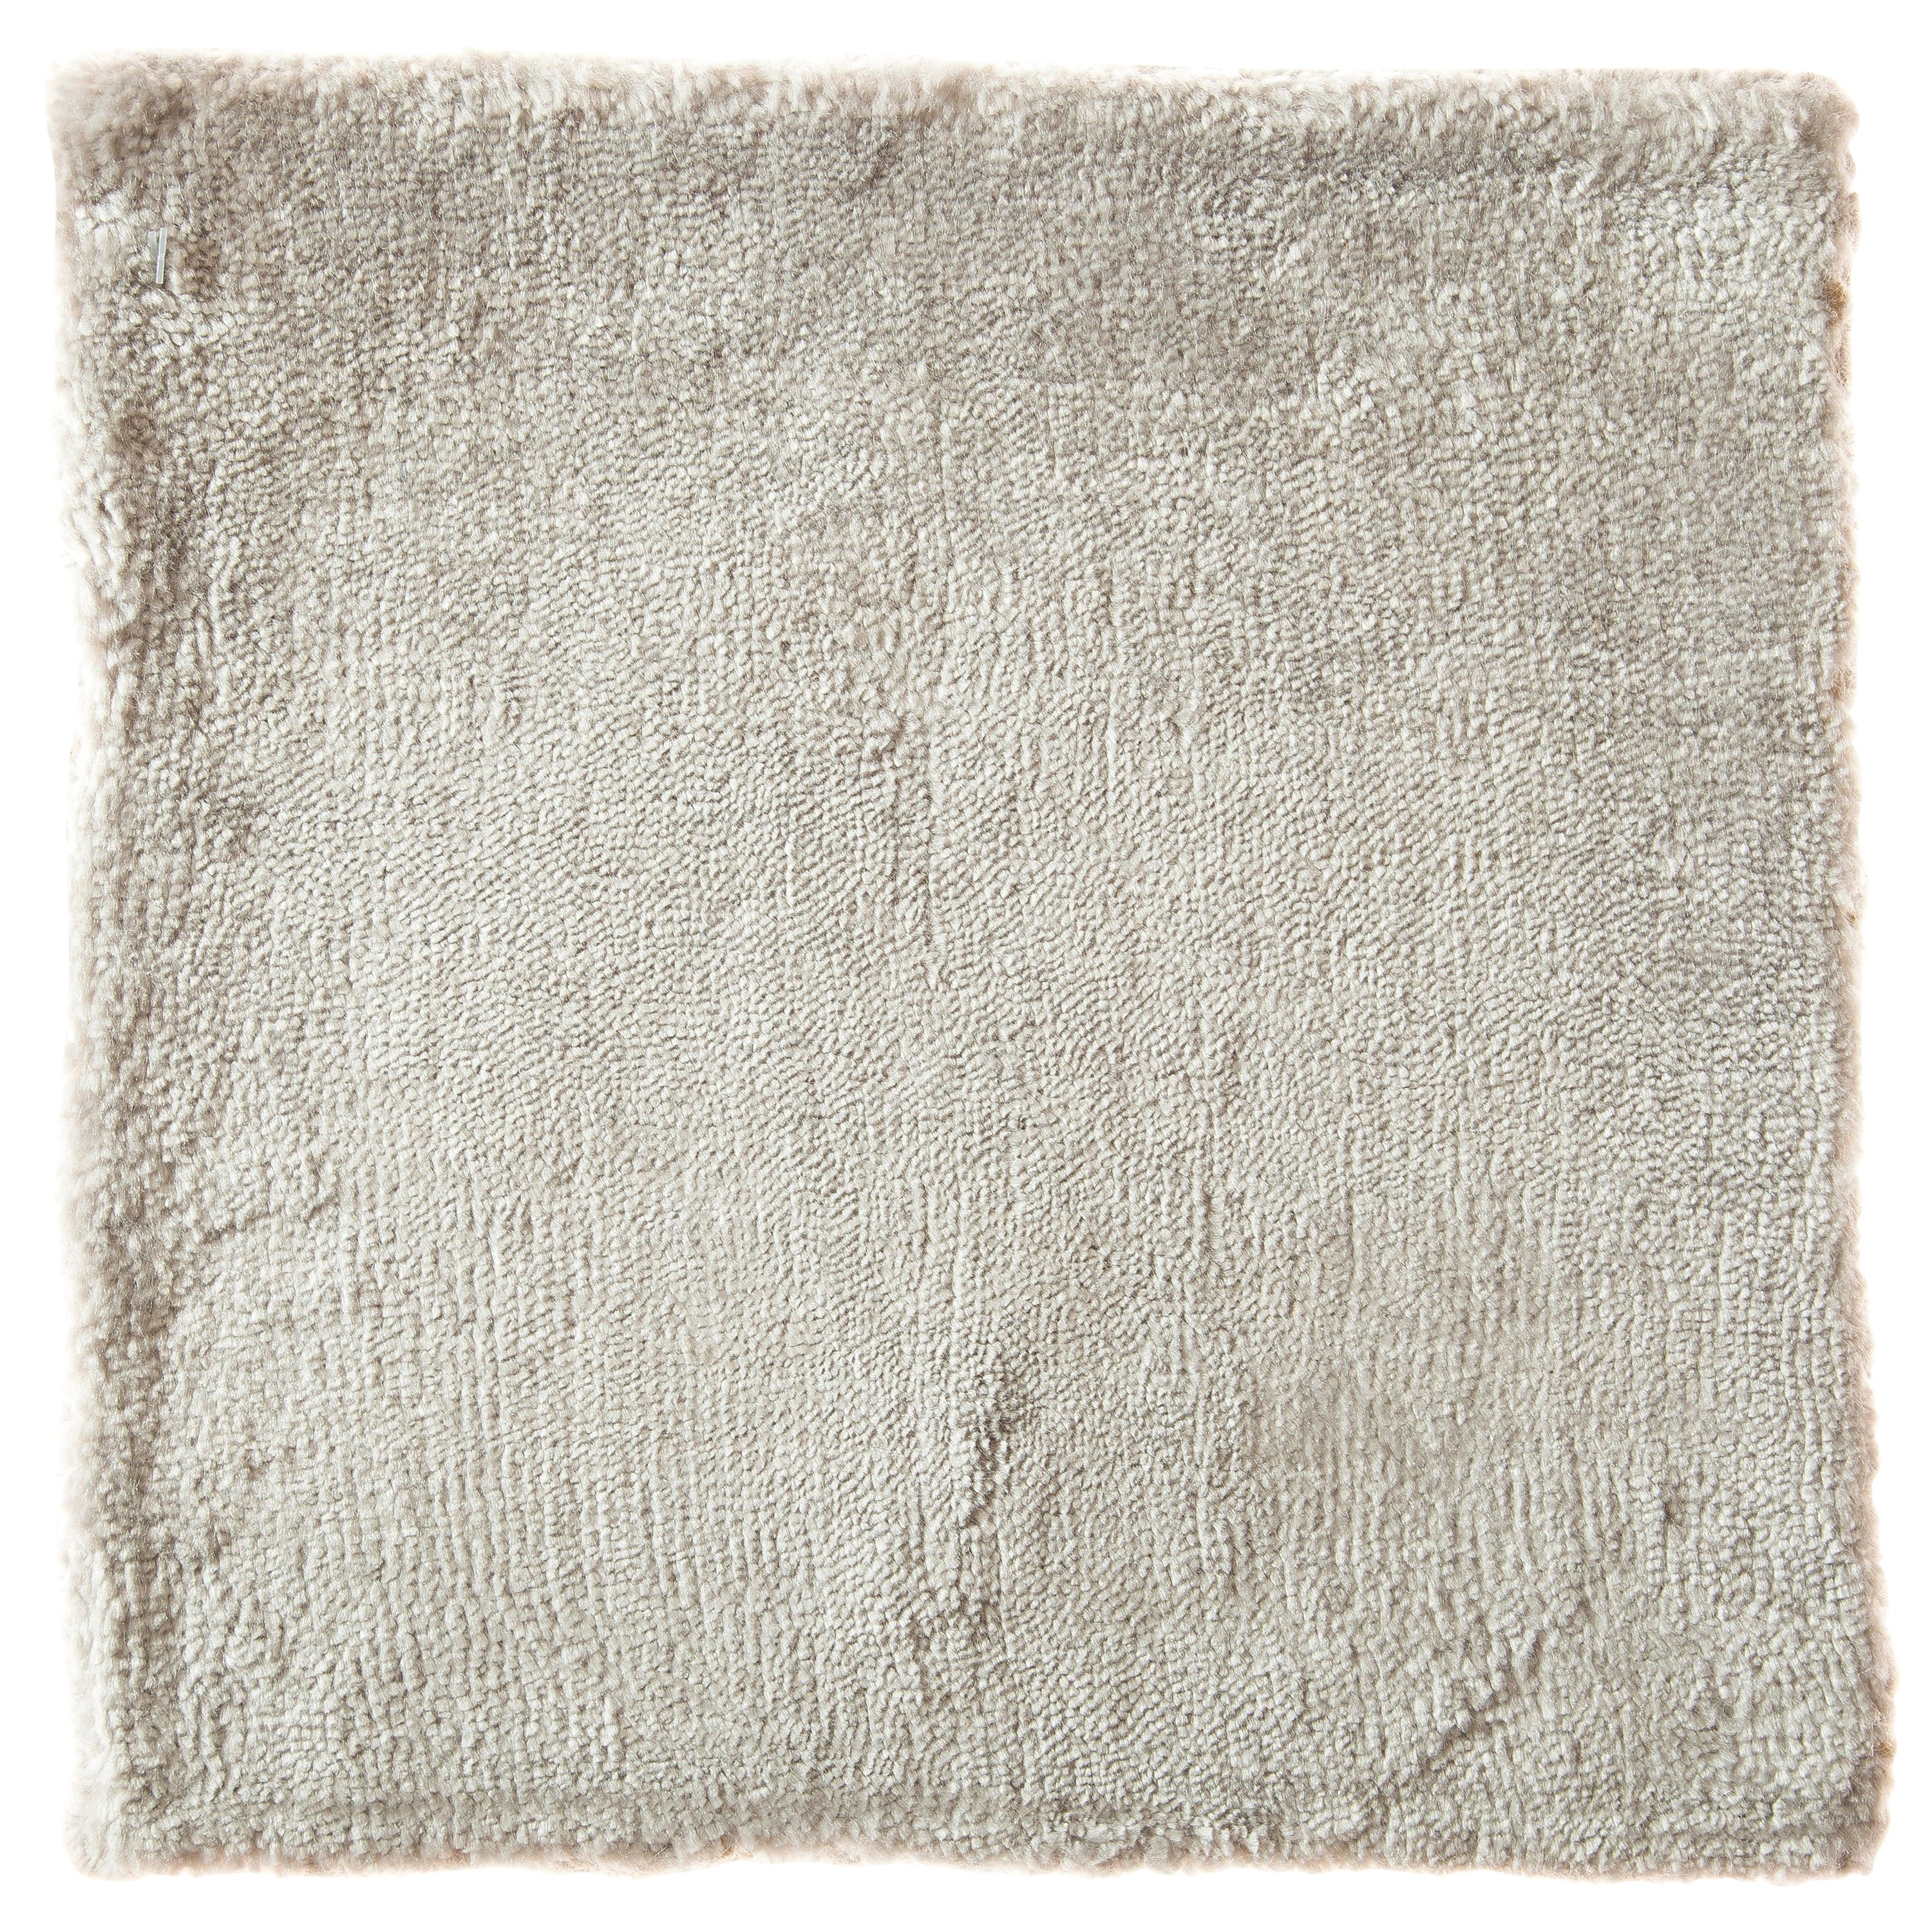 Contemporary Cream Ivory and Silver Hand-Loomed Bamboo Silk Rug